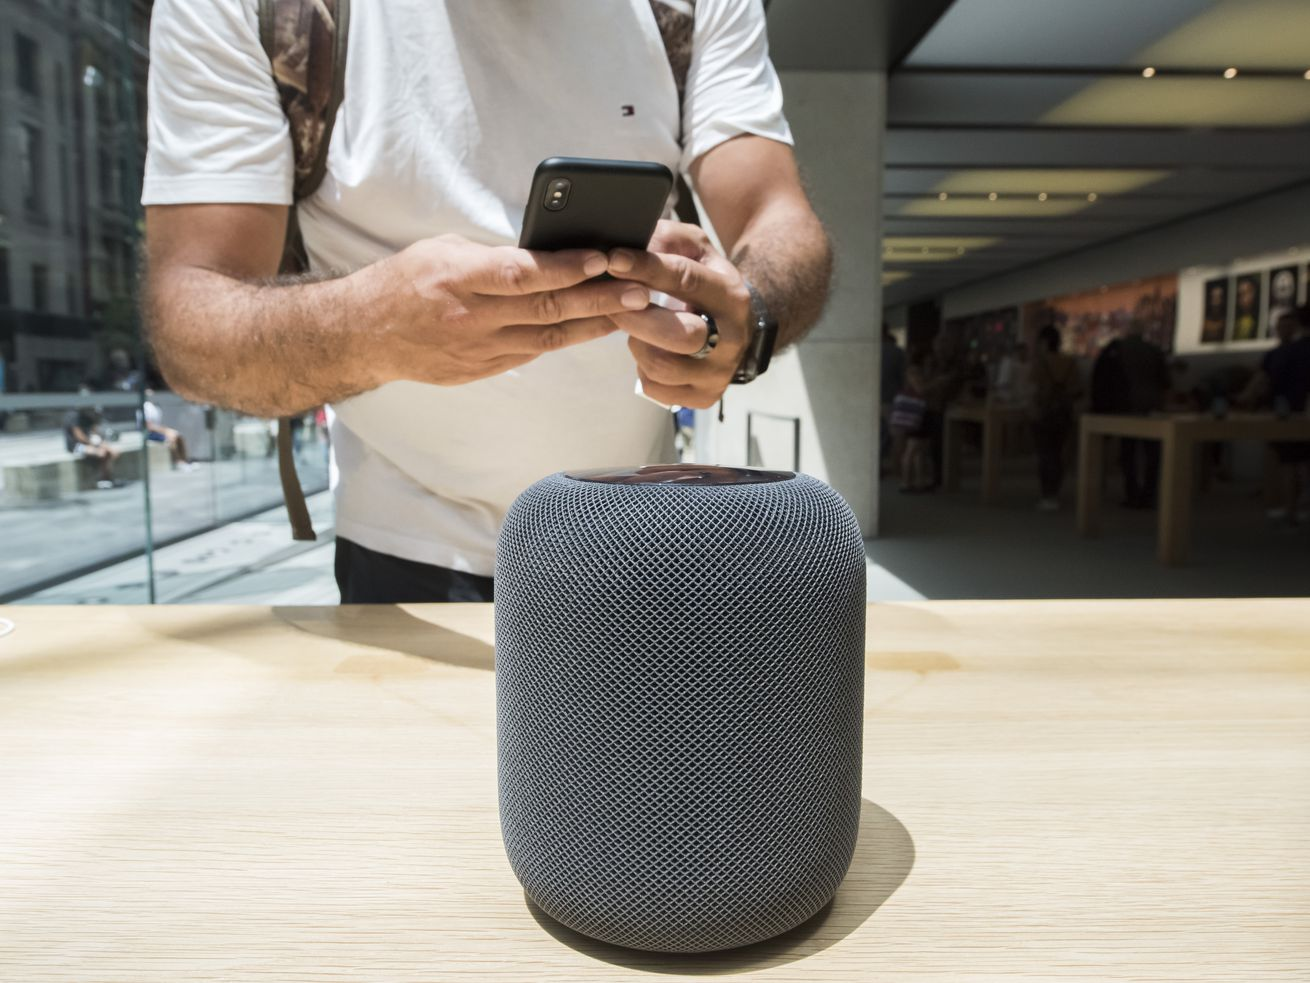 Voice tech like Alexa and Siri hasn't found its true calling yet: Inside the voice assistant 'revolution'